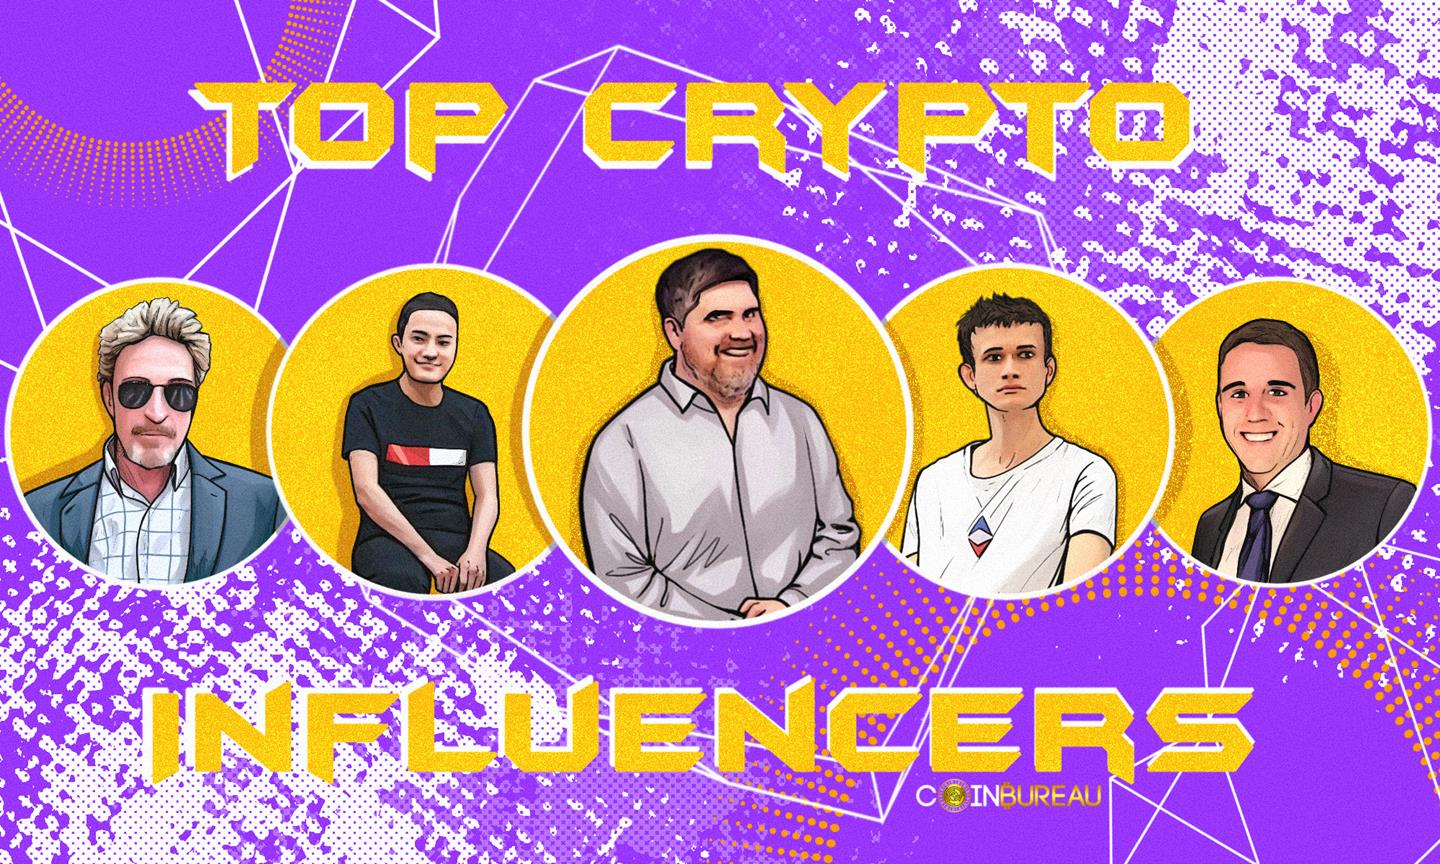 13 of the Top Crypto Influencers of 2021